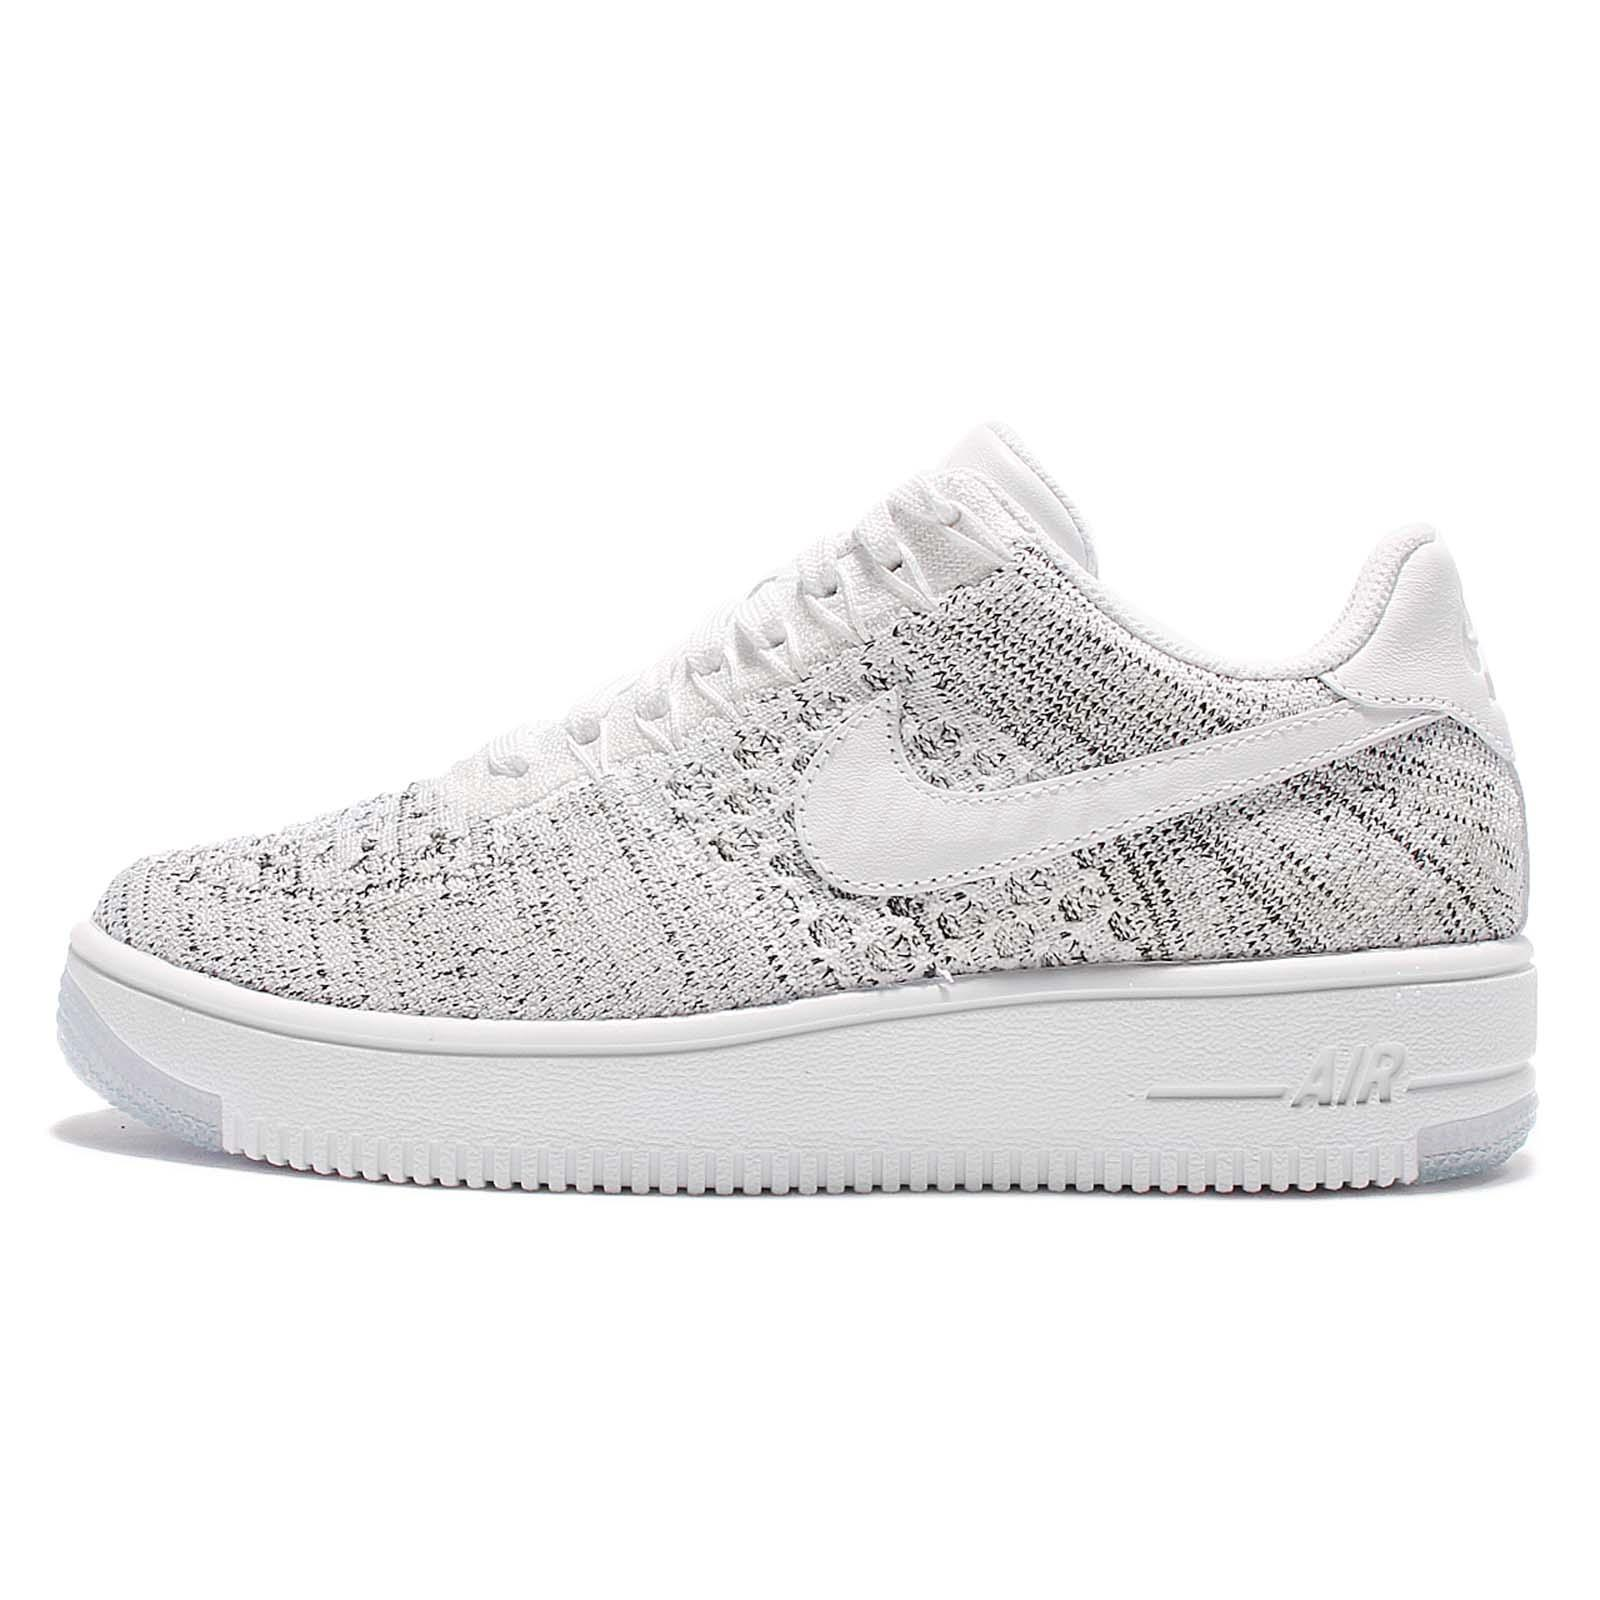 Wmns Nike AF1 Flyknit Low White Grey Women Classic Air Force 1 Shoes  820256-103